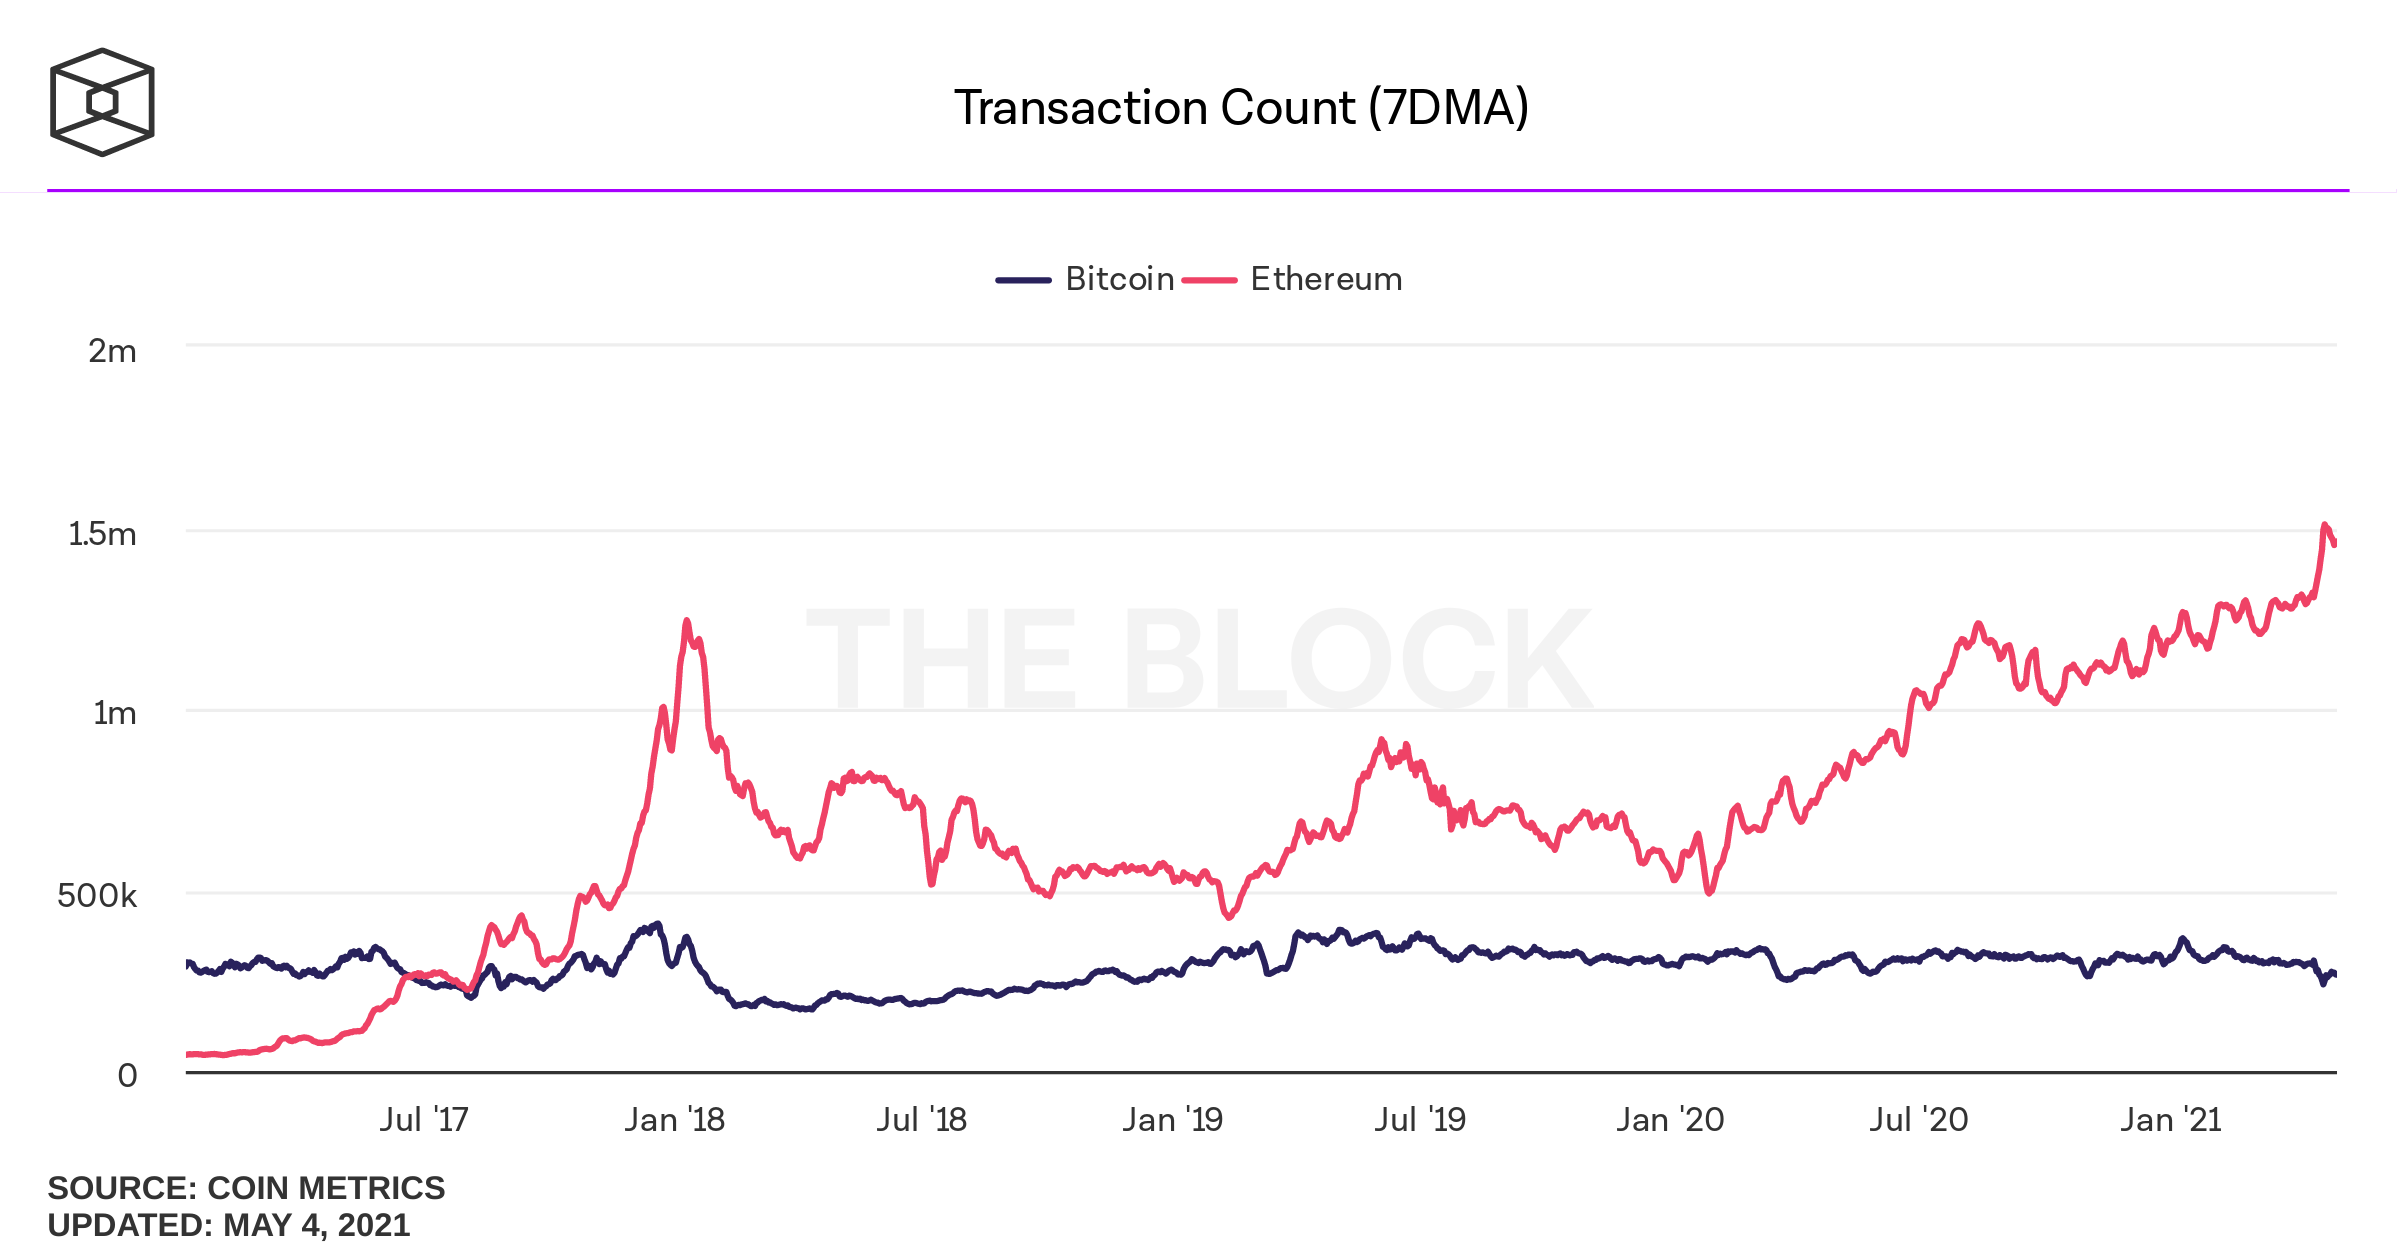 transaction-count-daily btc vs. eth.png